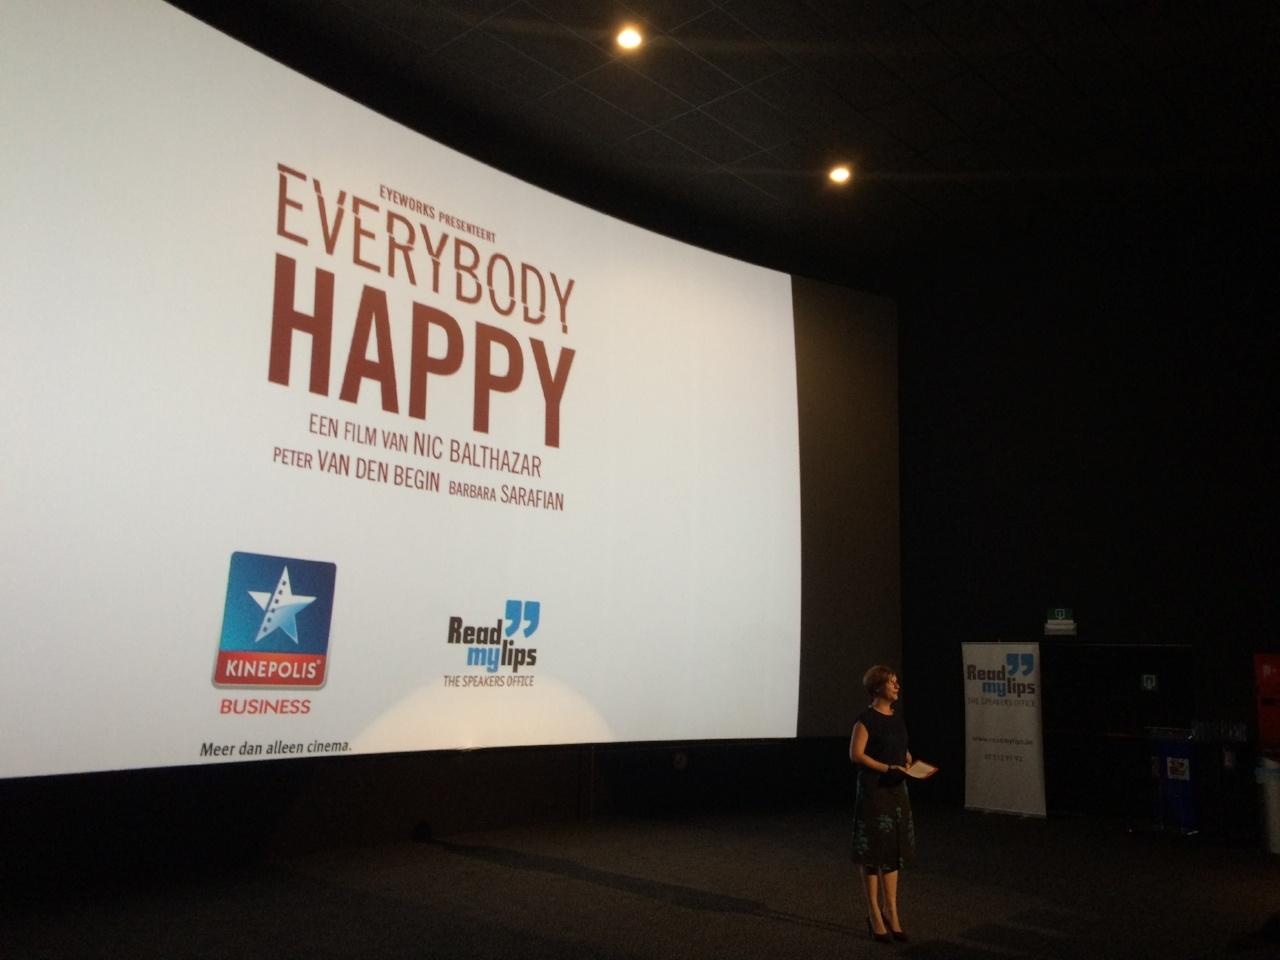 Event_EverybodyHappy_filmzaal.jpg